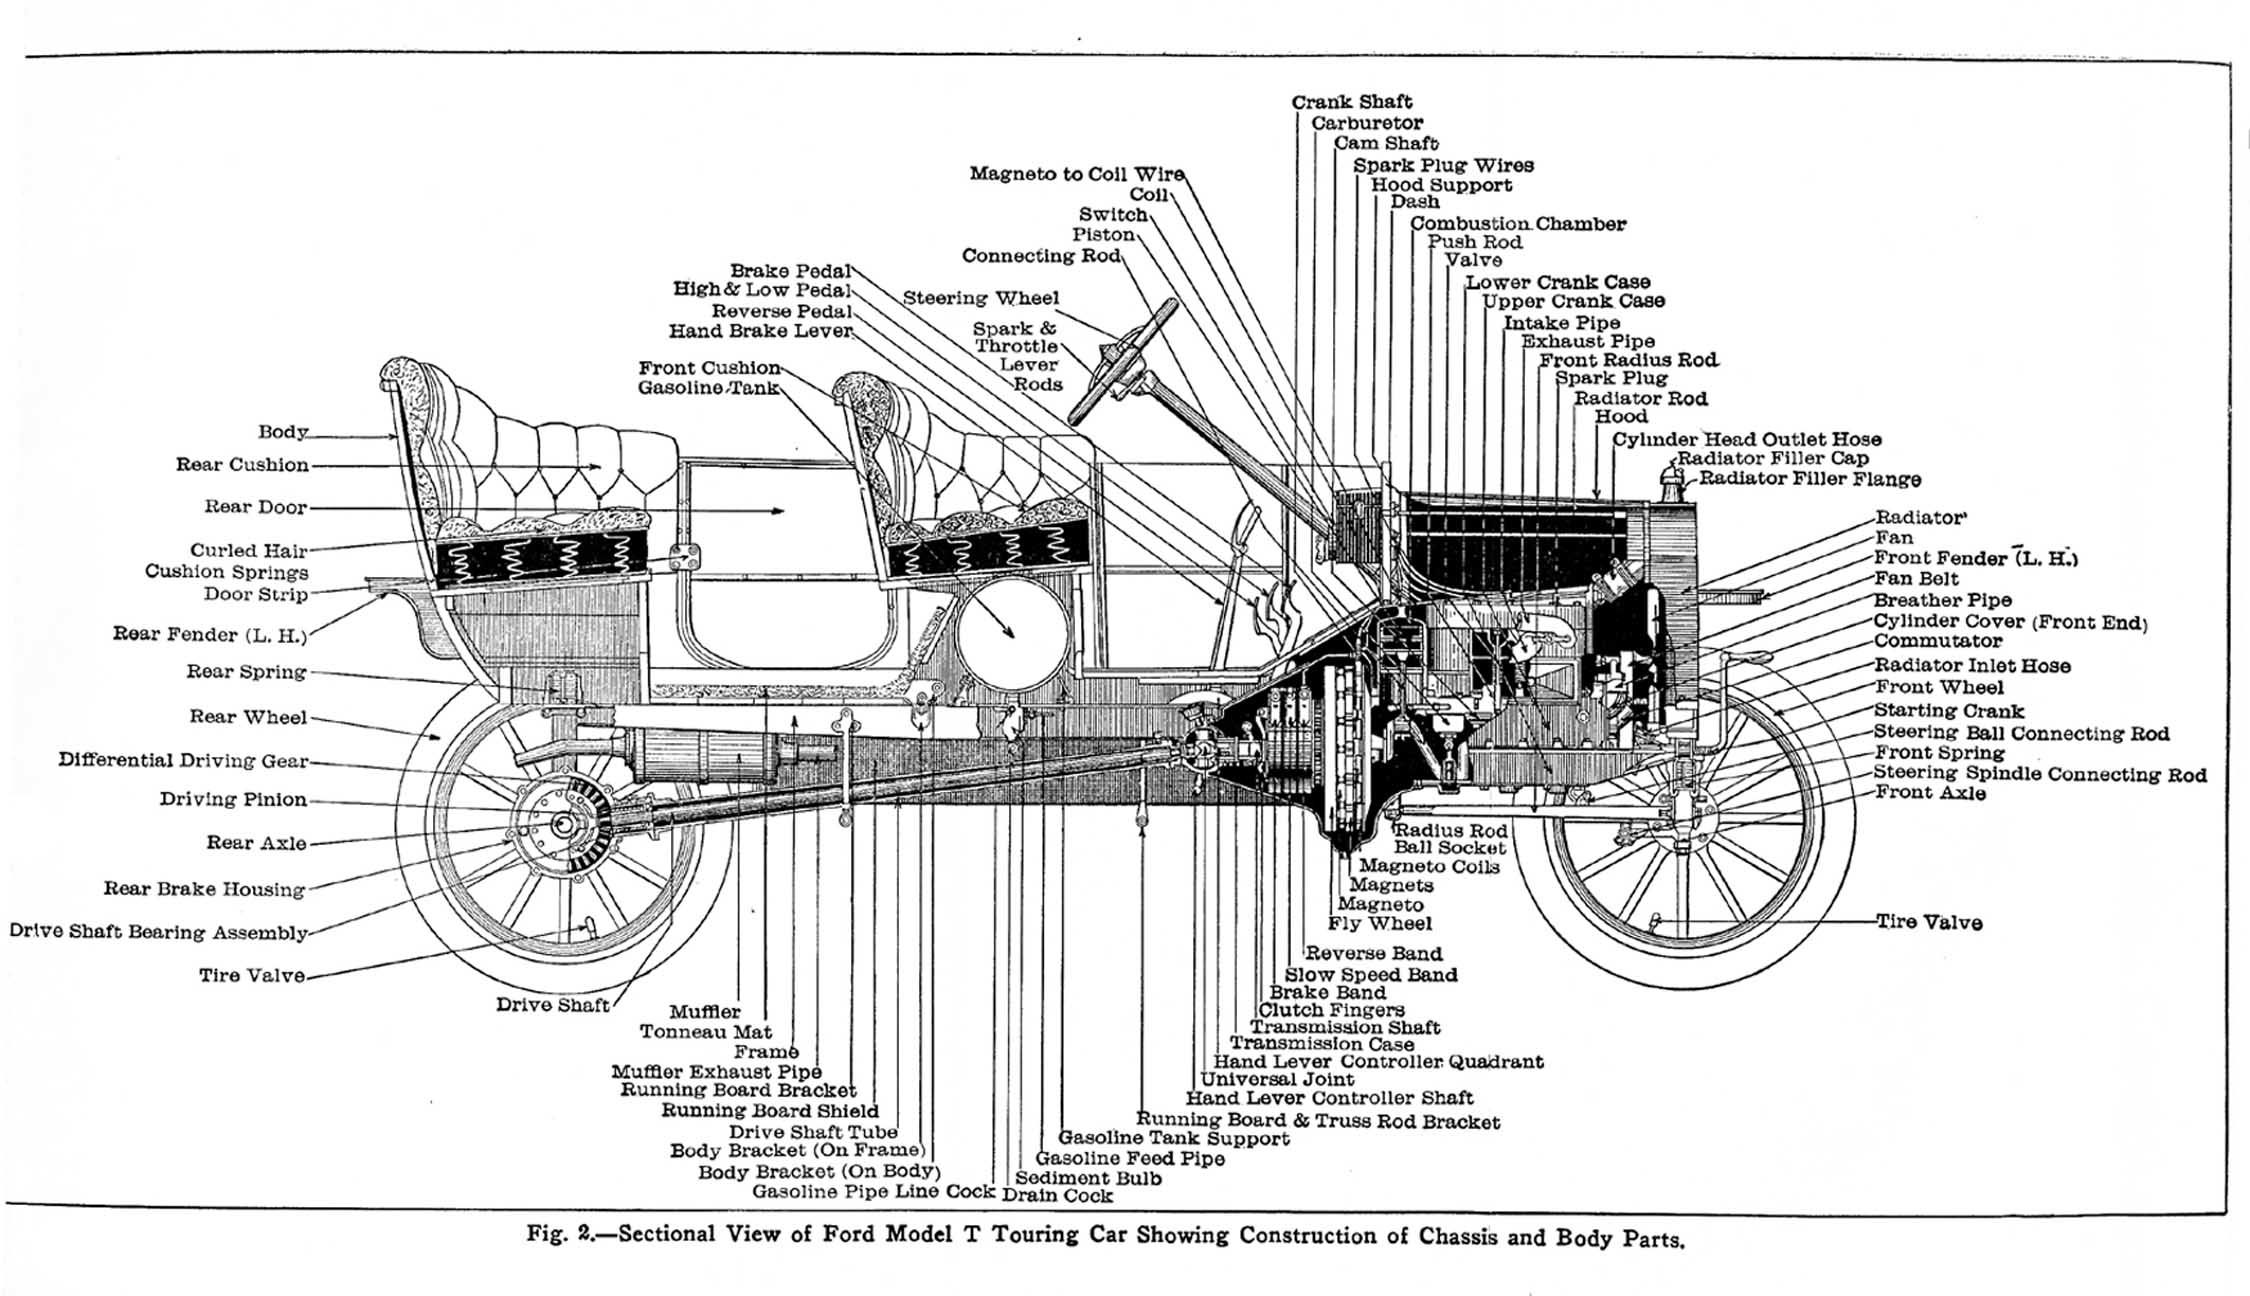 model t engine diagram 1915 model t ford repair maintainance rest rh pinterest com model t ford engine diagram model t ford engine diagram